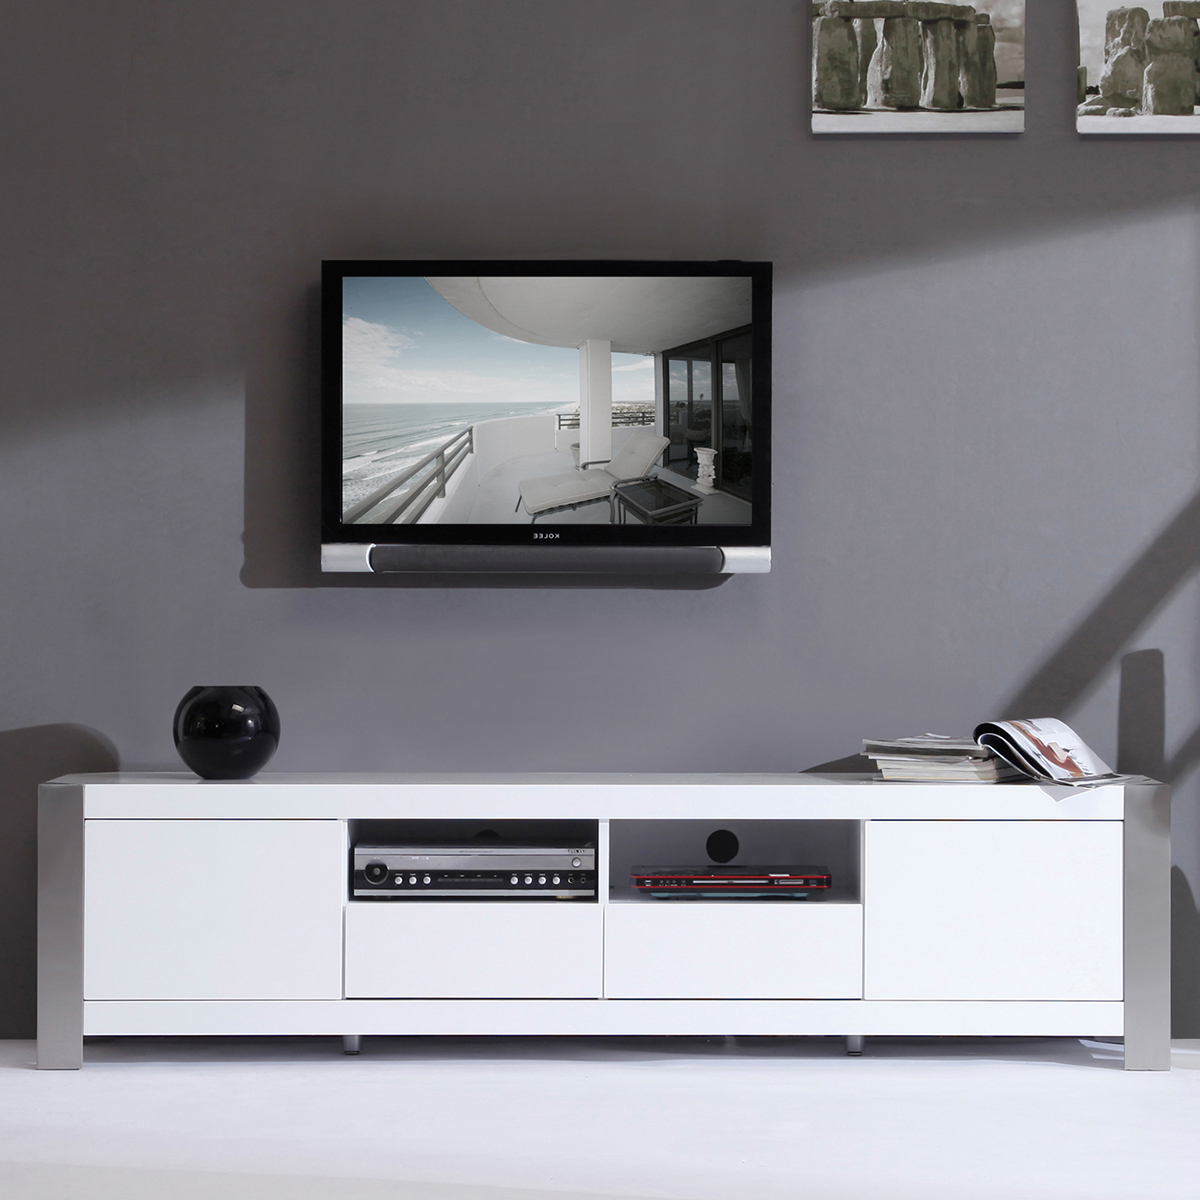 Newest Led Tv Stand White Modern With Fireplace Industrial Diy Floating Pertaining To Modern White Lacquer Tv Stands (Gallery 3 of 20)